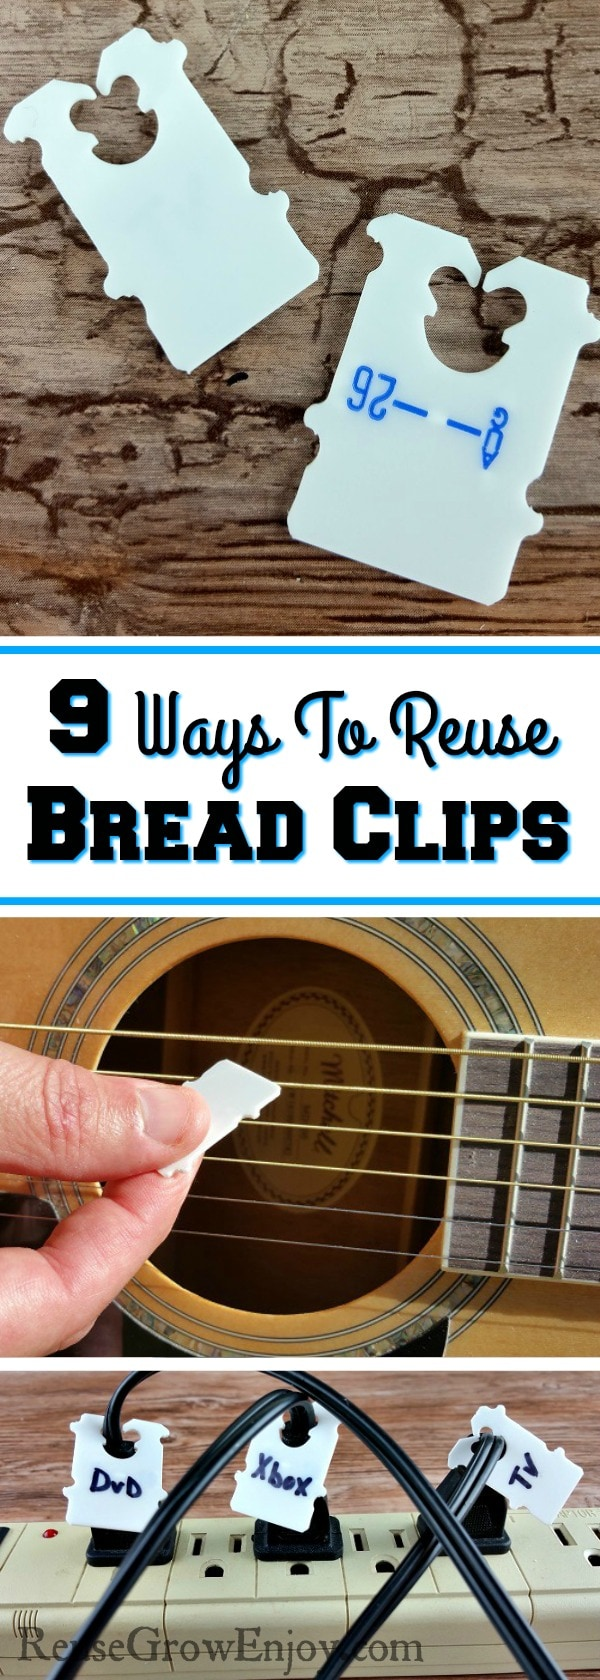 Bread clips is one of those things most just toss in the trash. Check out these 9 Ways To Reuse Bread Clips and you will never toss them out again!